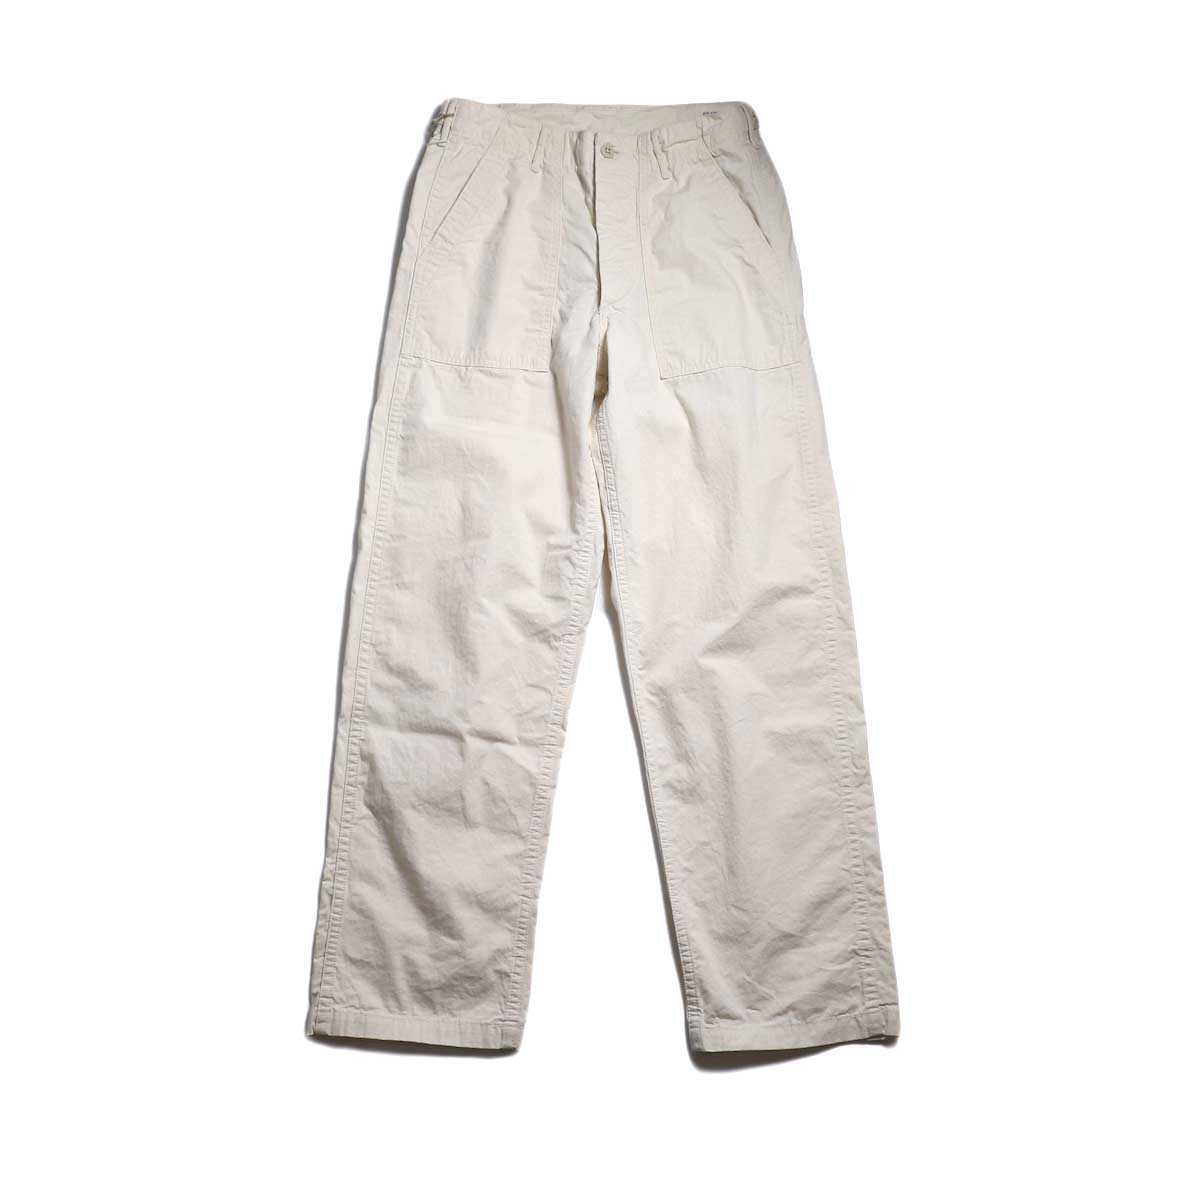 orSlow / US ARMY FATIGUE PANTS -ECRU